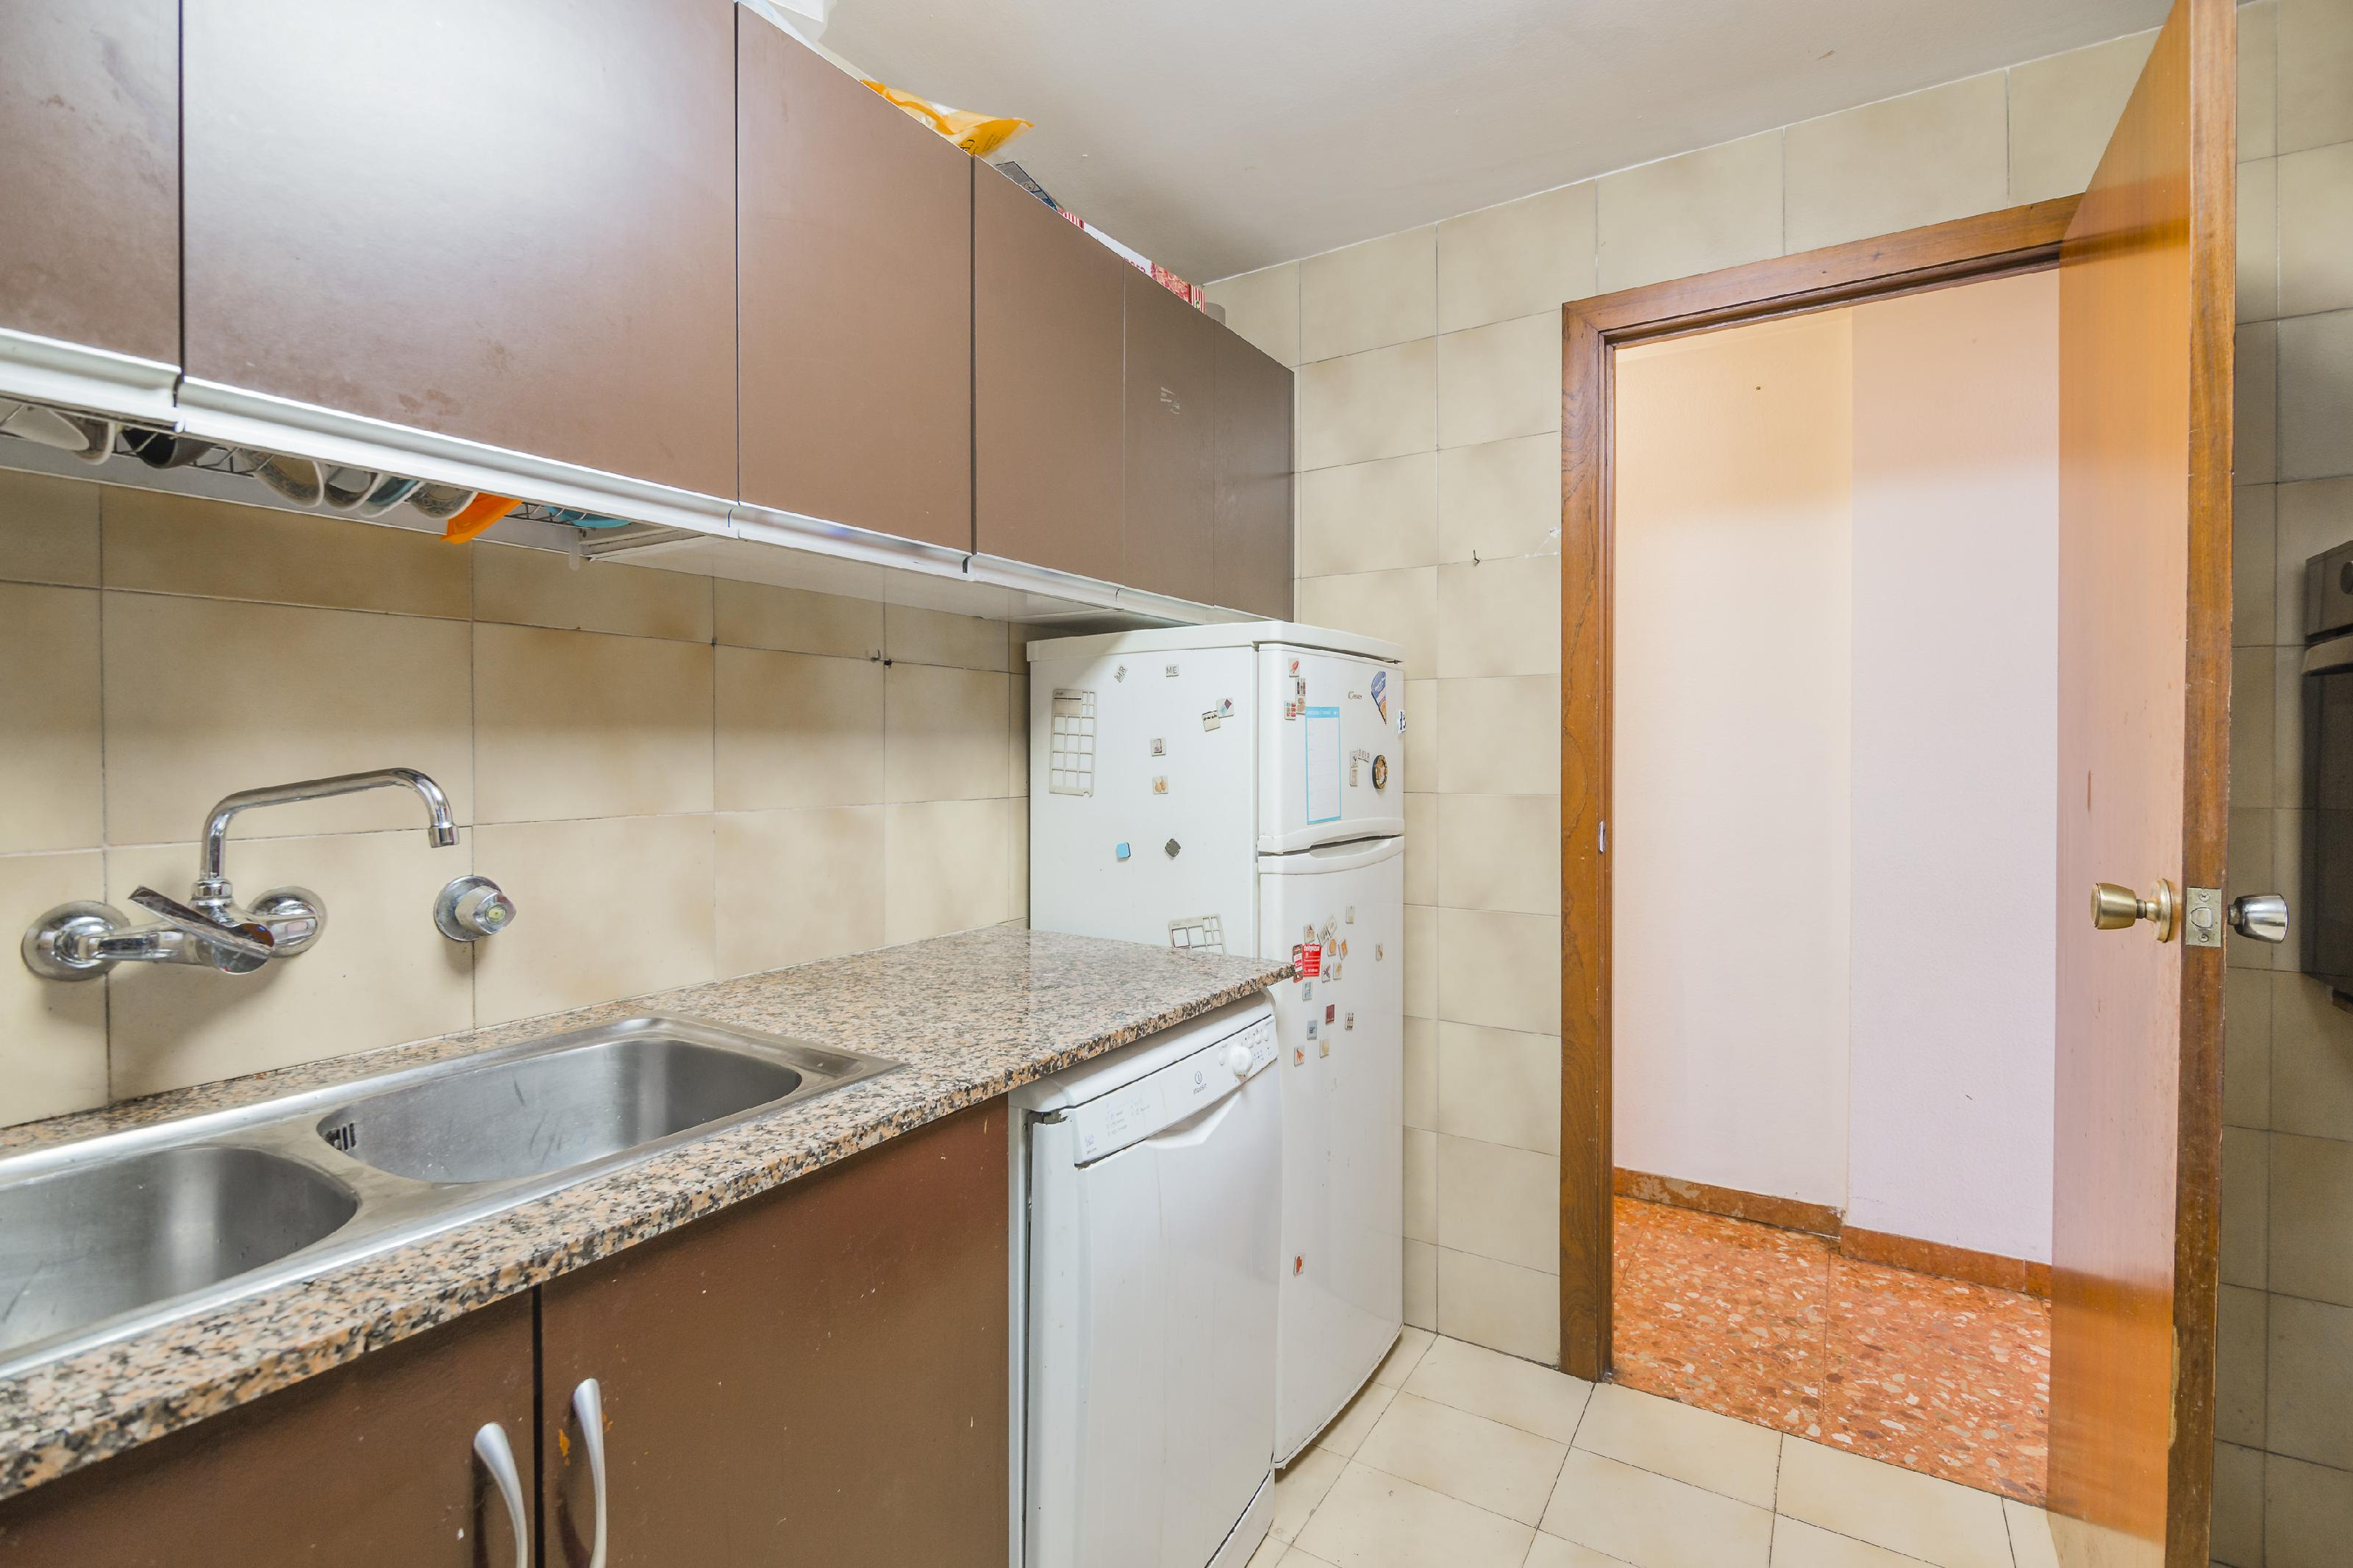 239426 Flat for sale in Les Corts, Les Corts 13